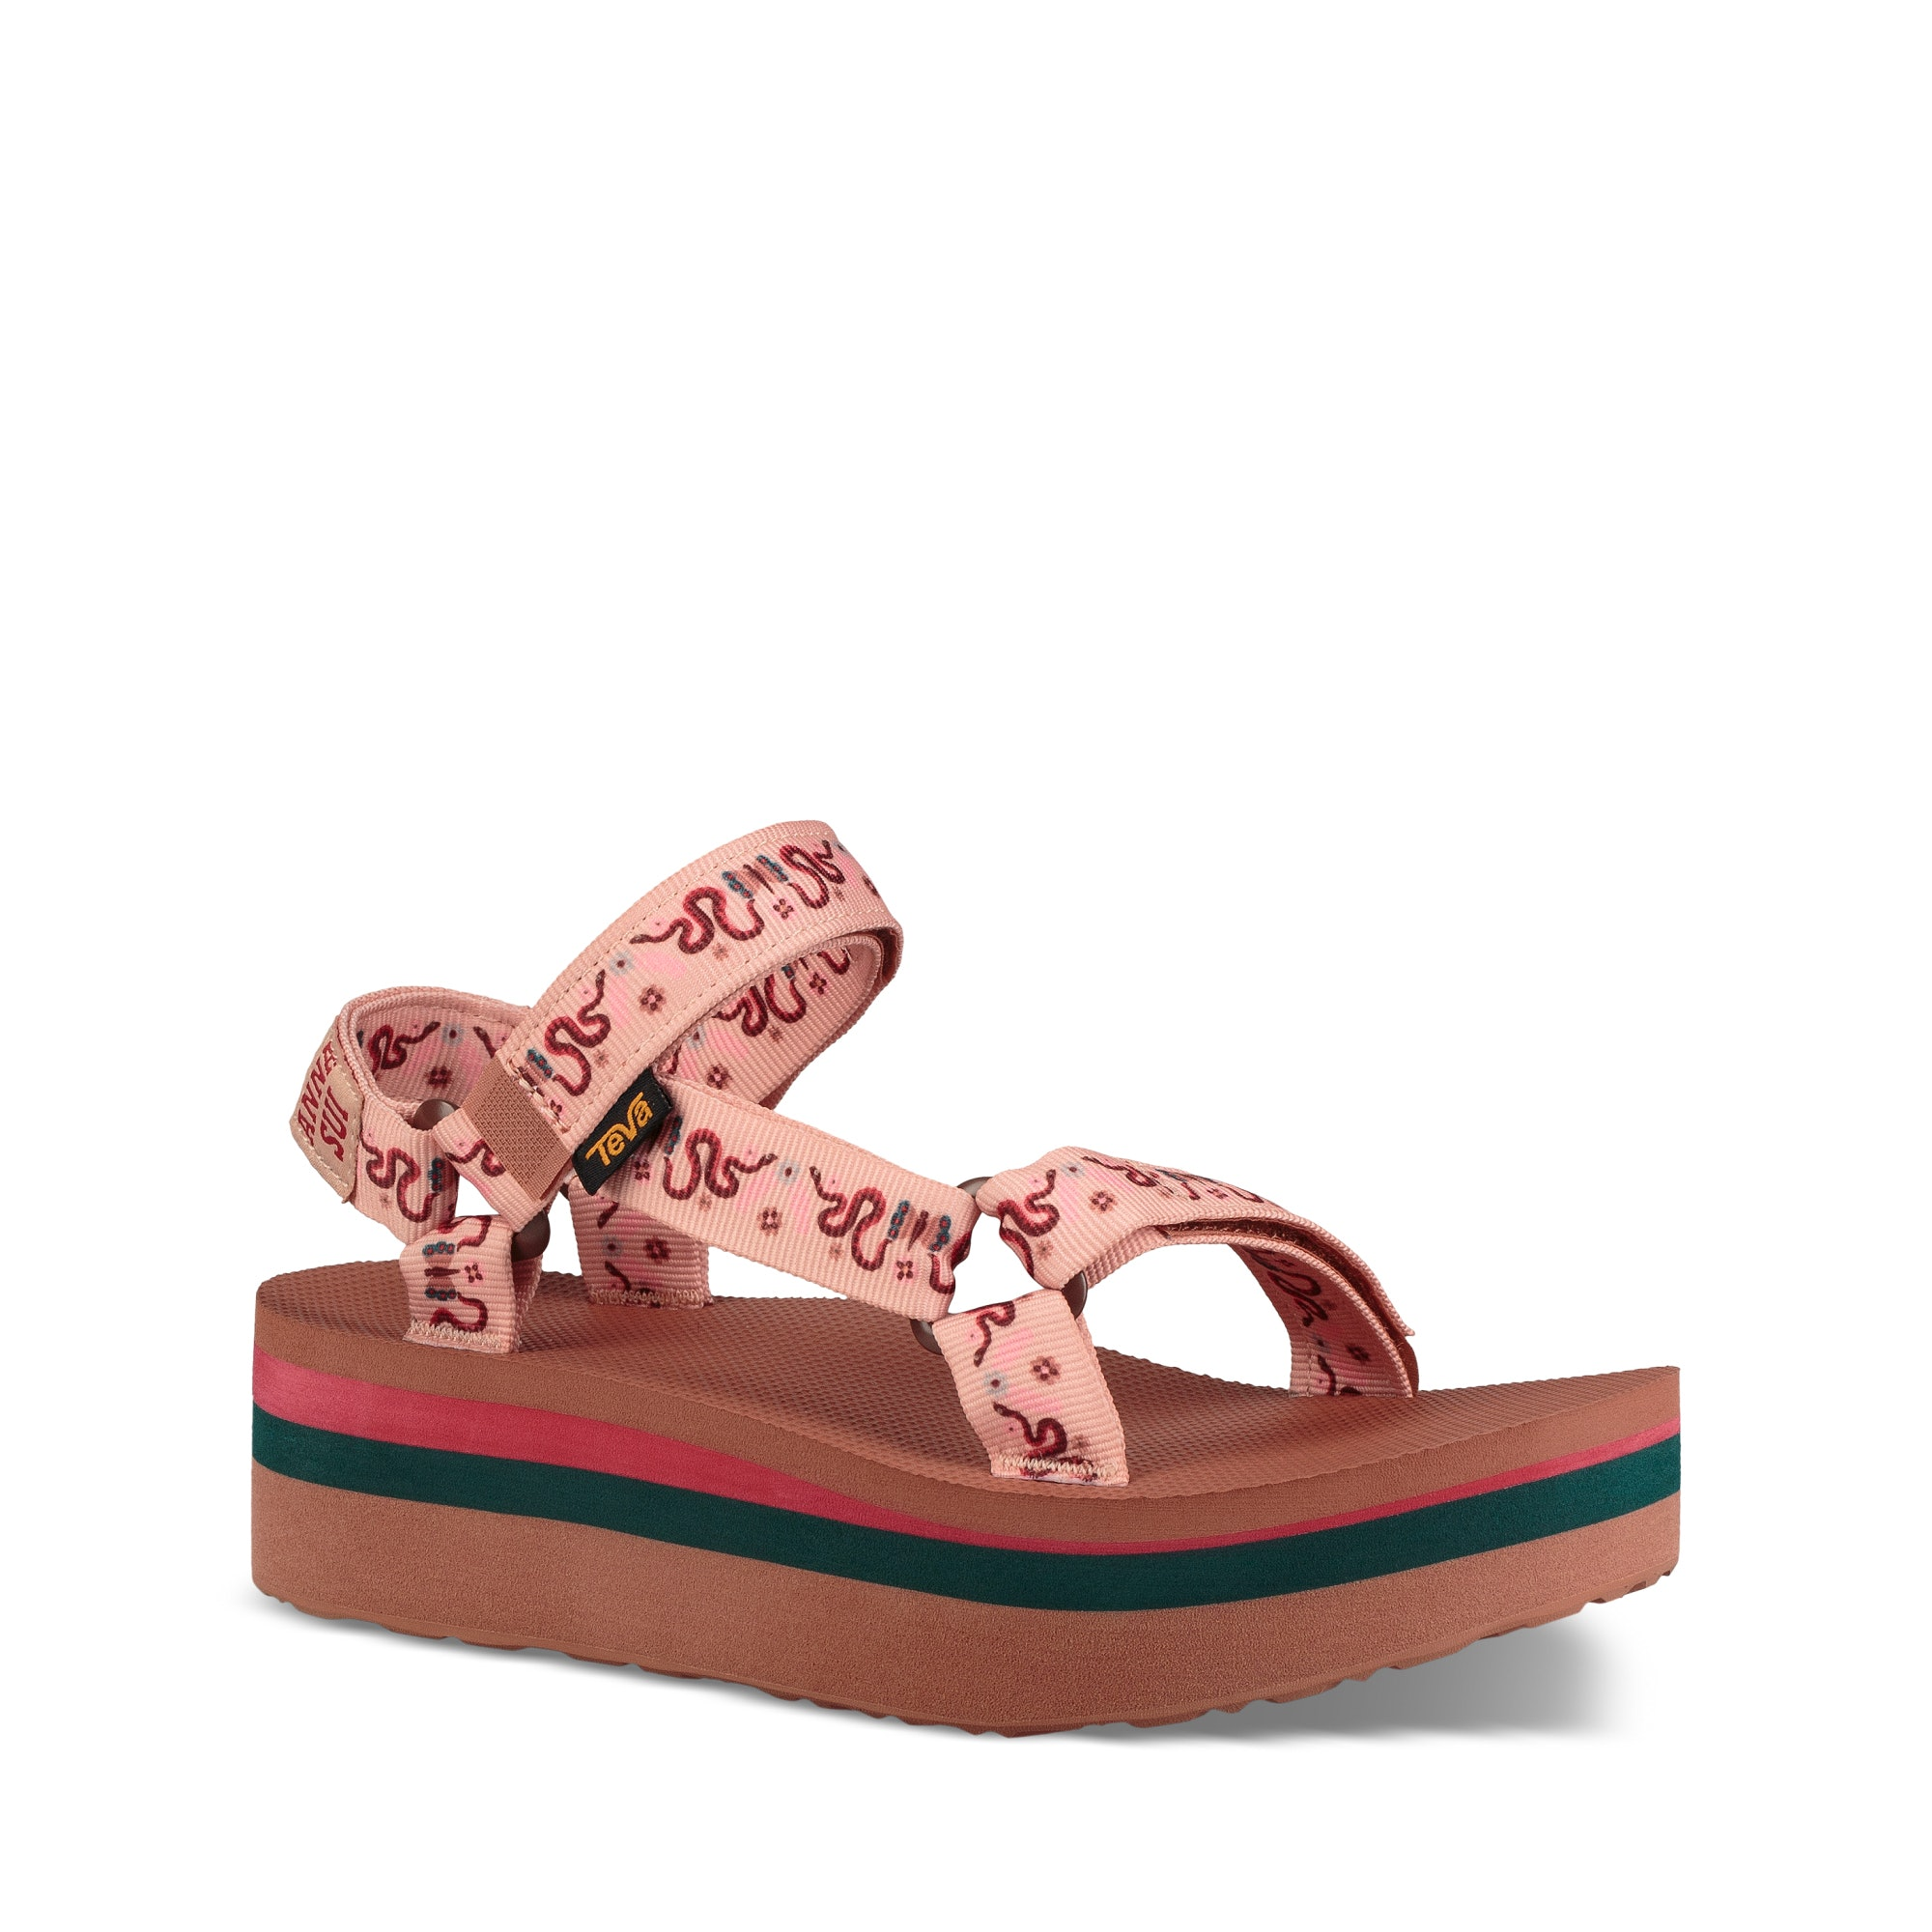 The Teva x Anna Sui Collab Includes The